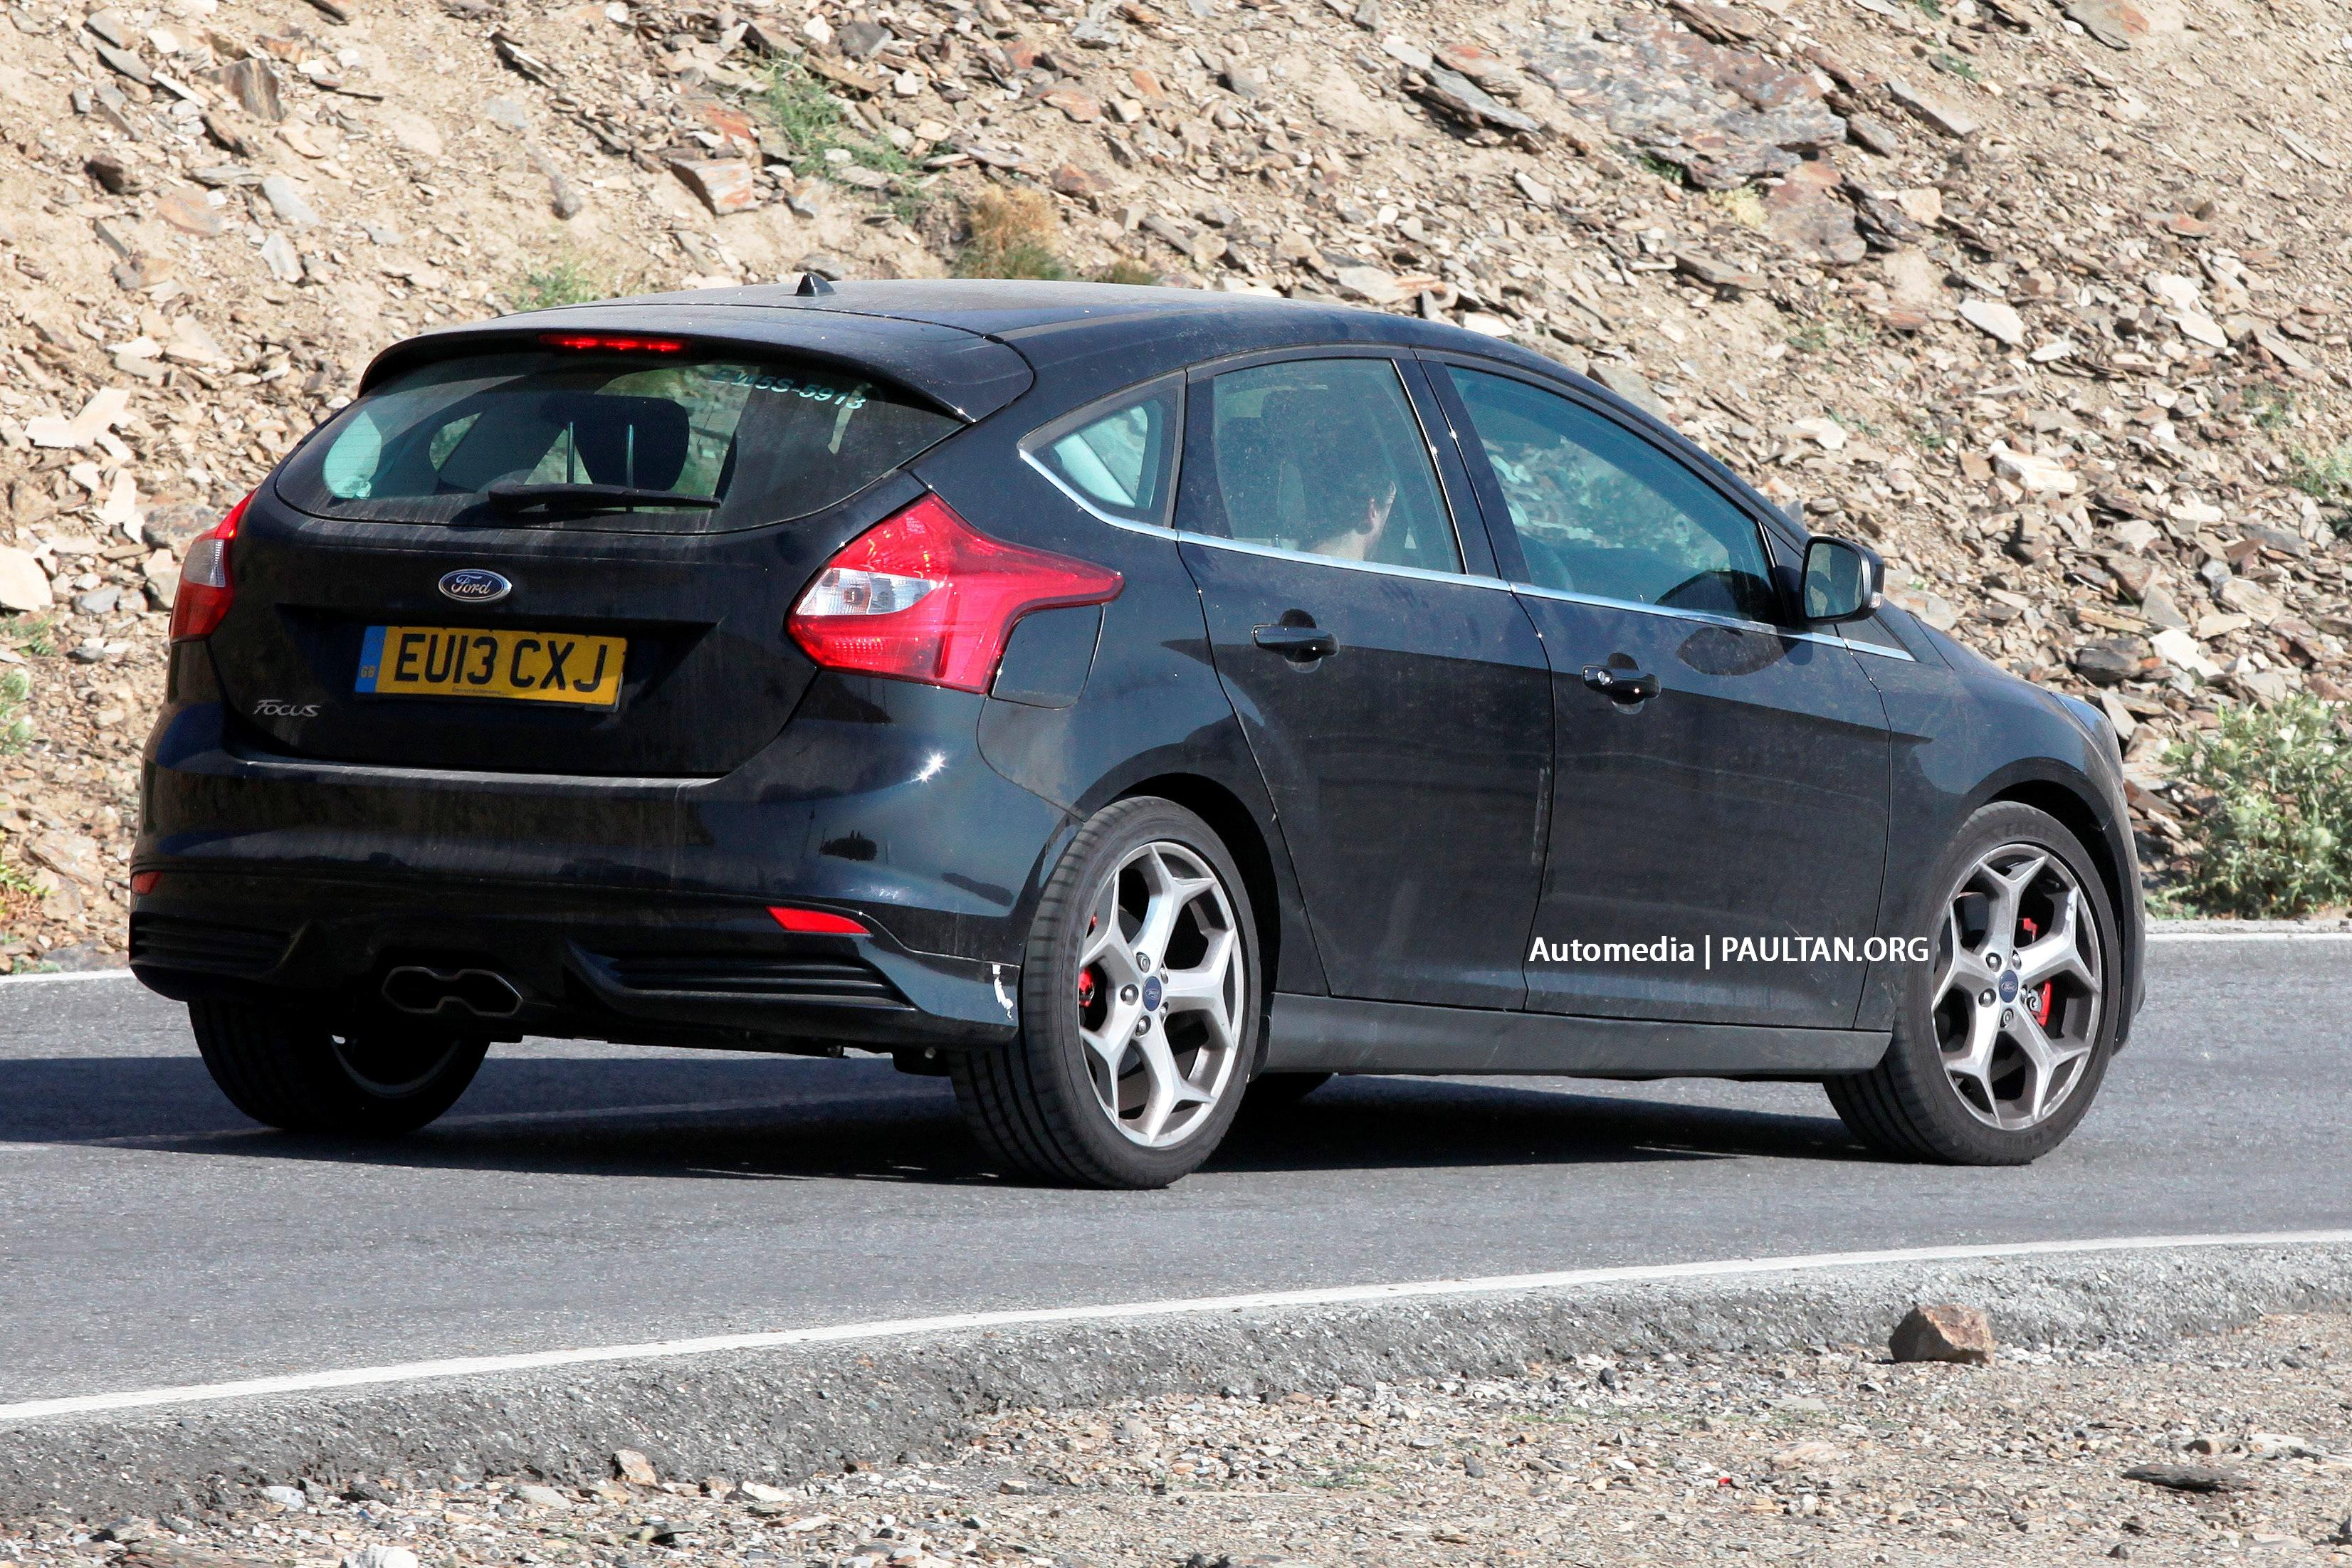 spyshots third gen ford focus st facelift undergoing testing. Black Bedroom Furniture Sets. Home Design Ideas